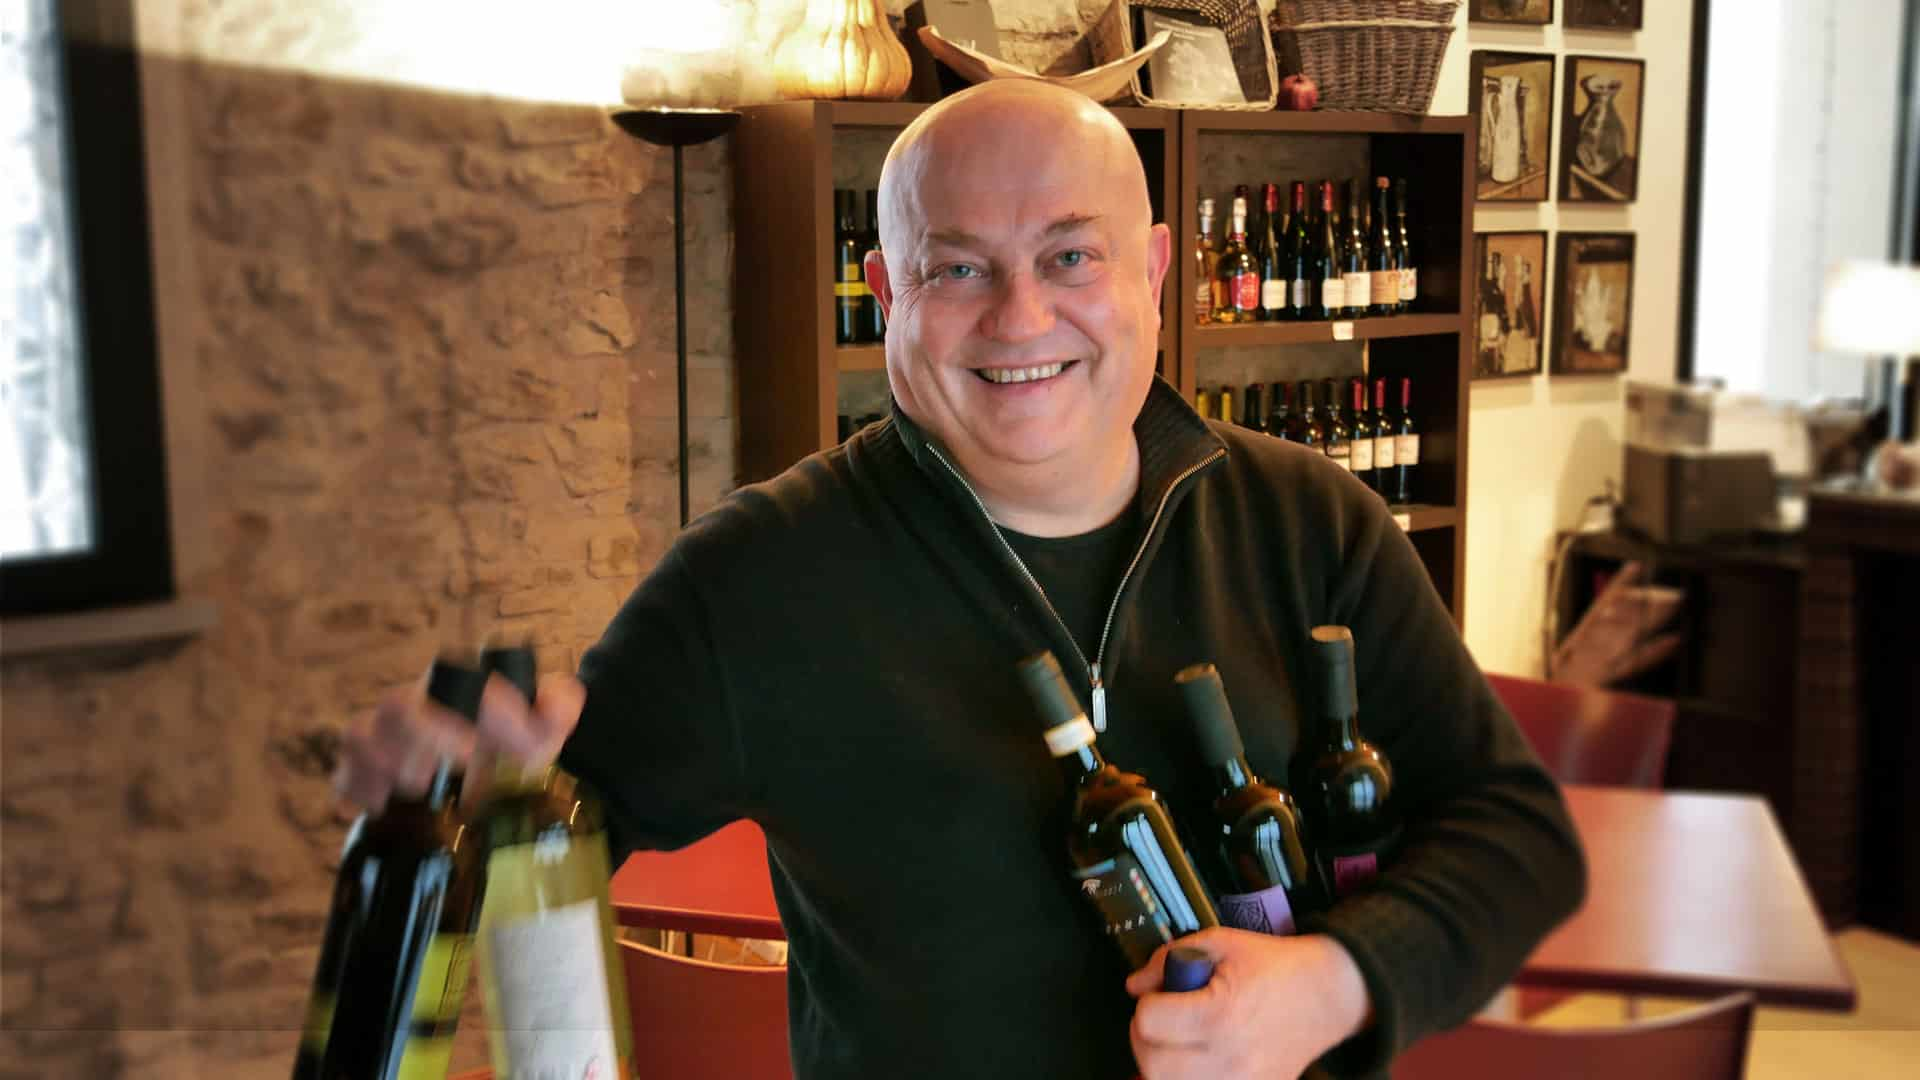 Marco, our wine specialist